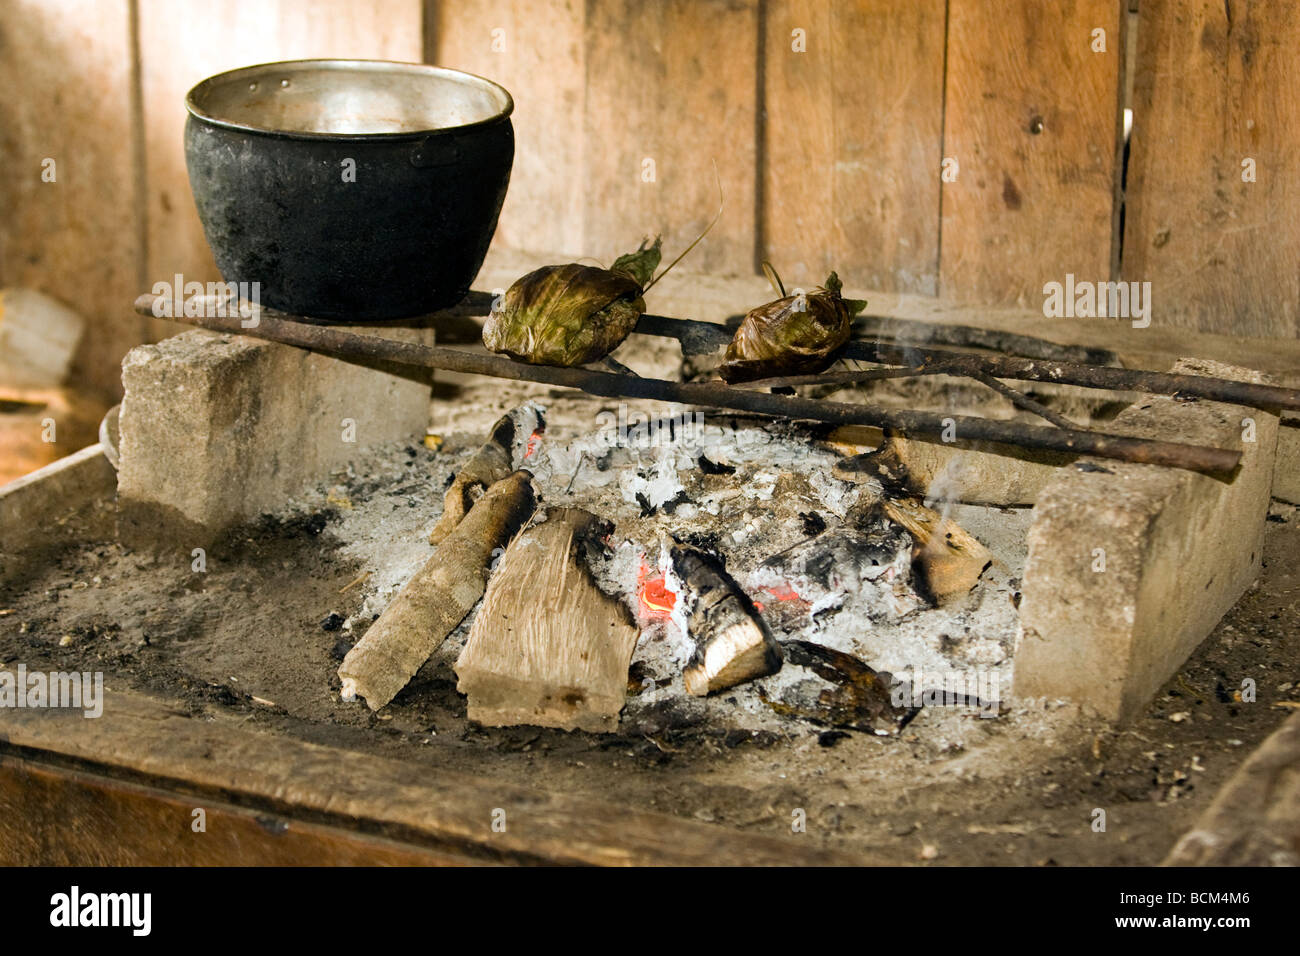 Traditional fireplace for cooking - Napo Wildlife Center - Napo Province, Ecuador - Stock Image